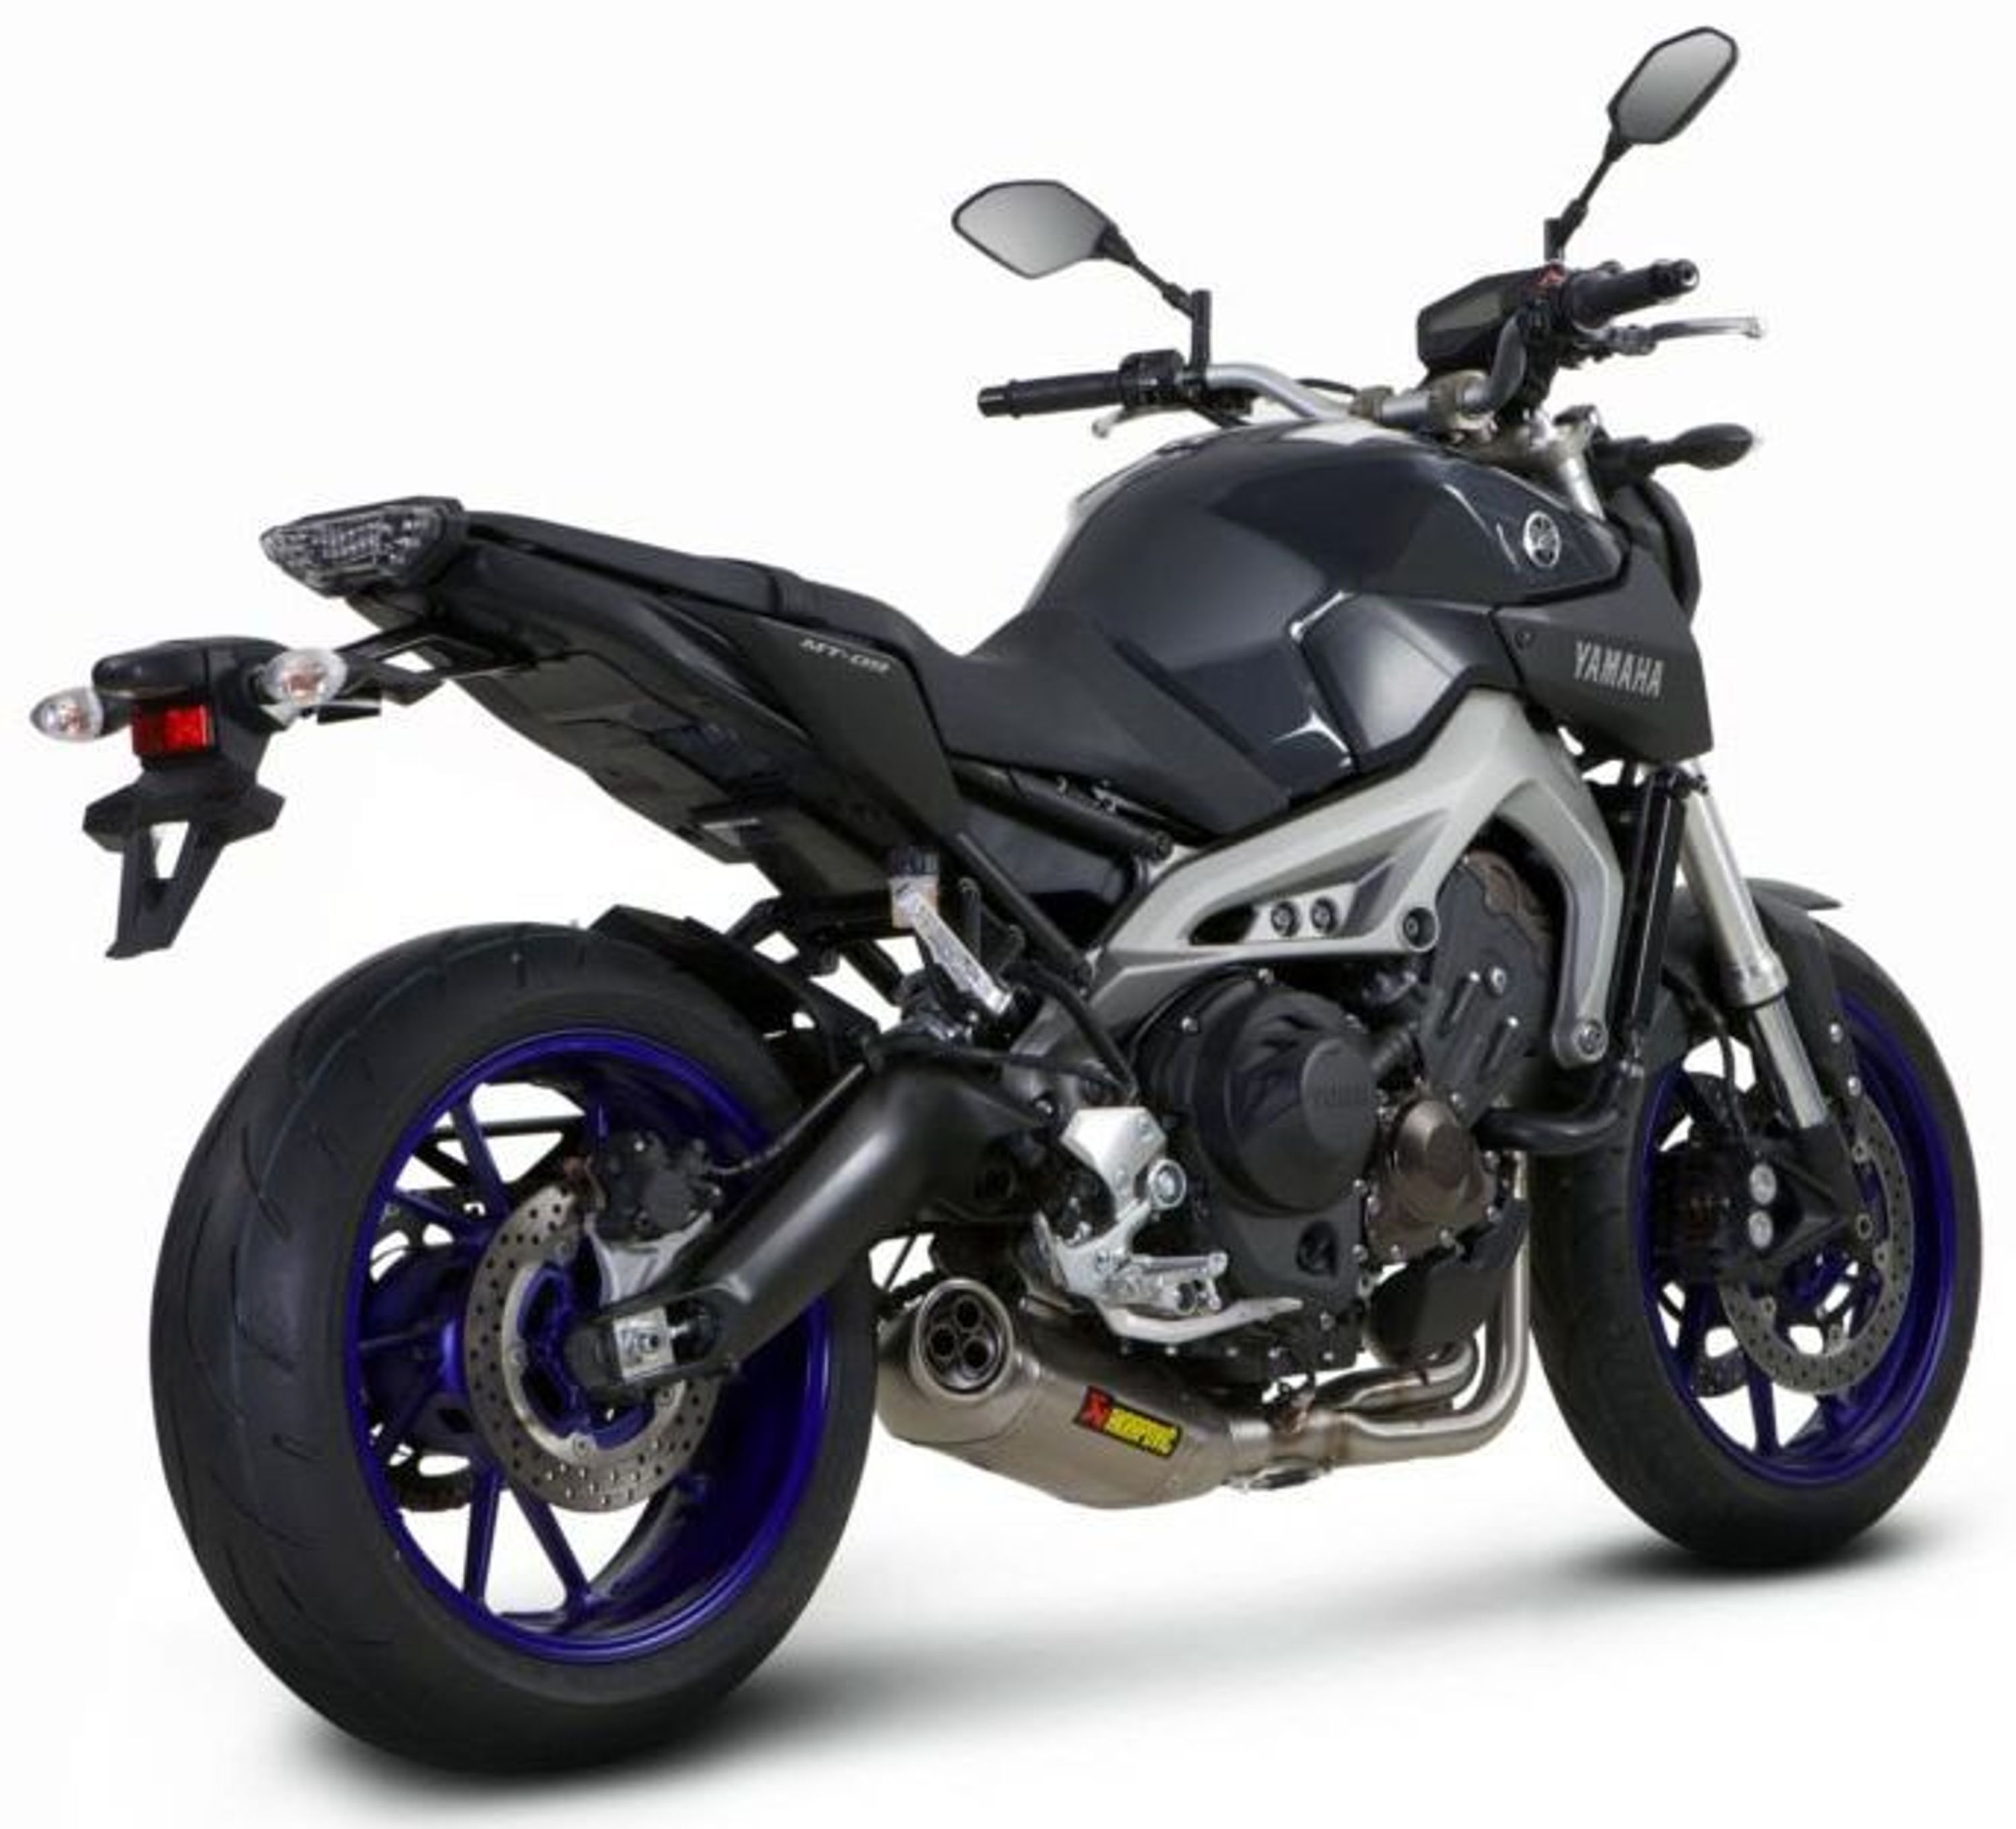 akrapovic sportauspuff auspuff yamaha mt 09 tracer 13 16. Black Bedroom Furniture Sets. Home Design Ideas